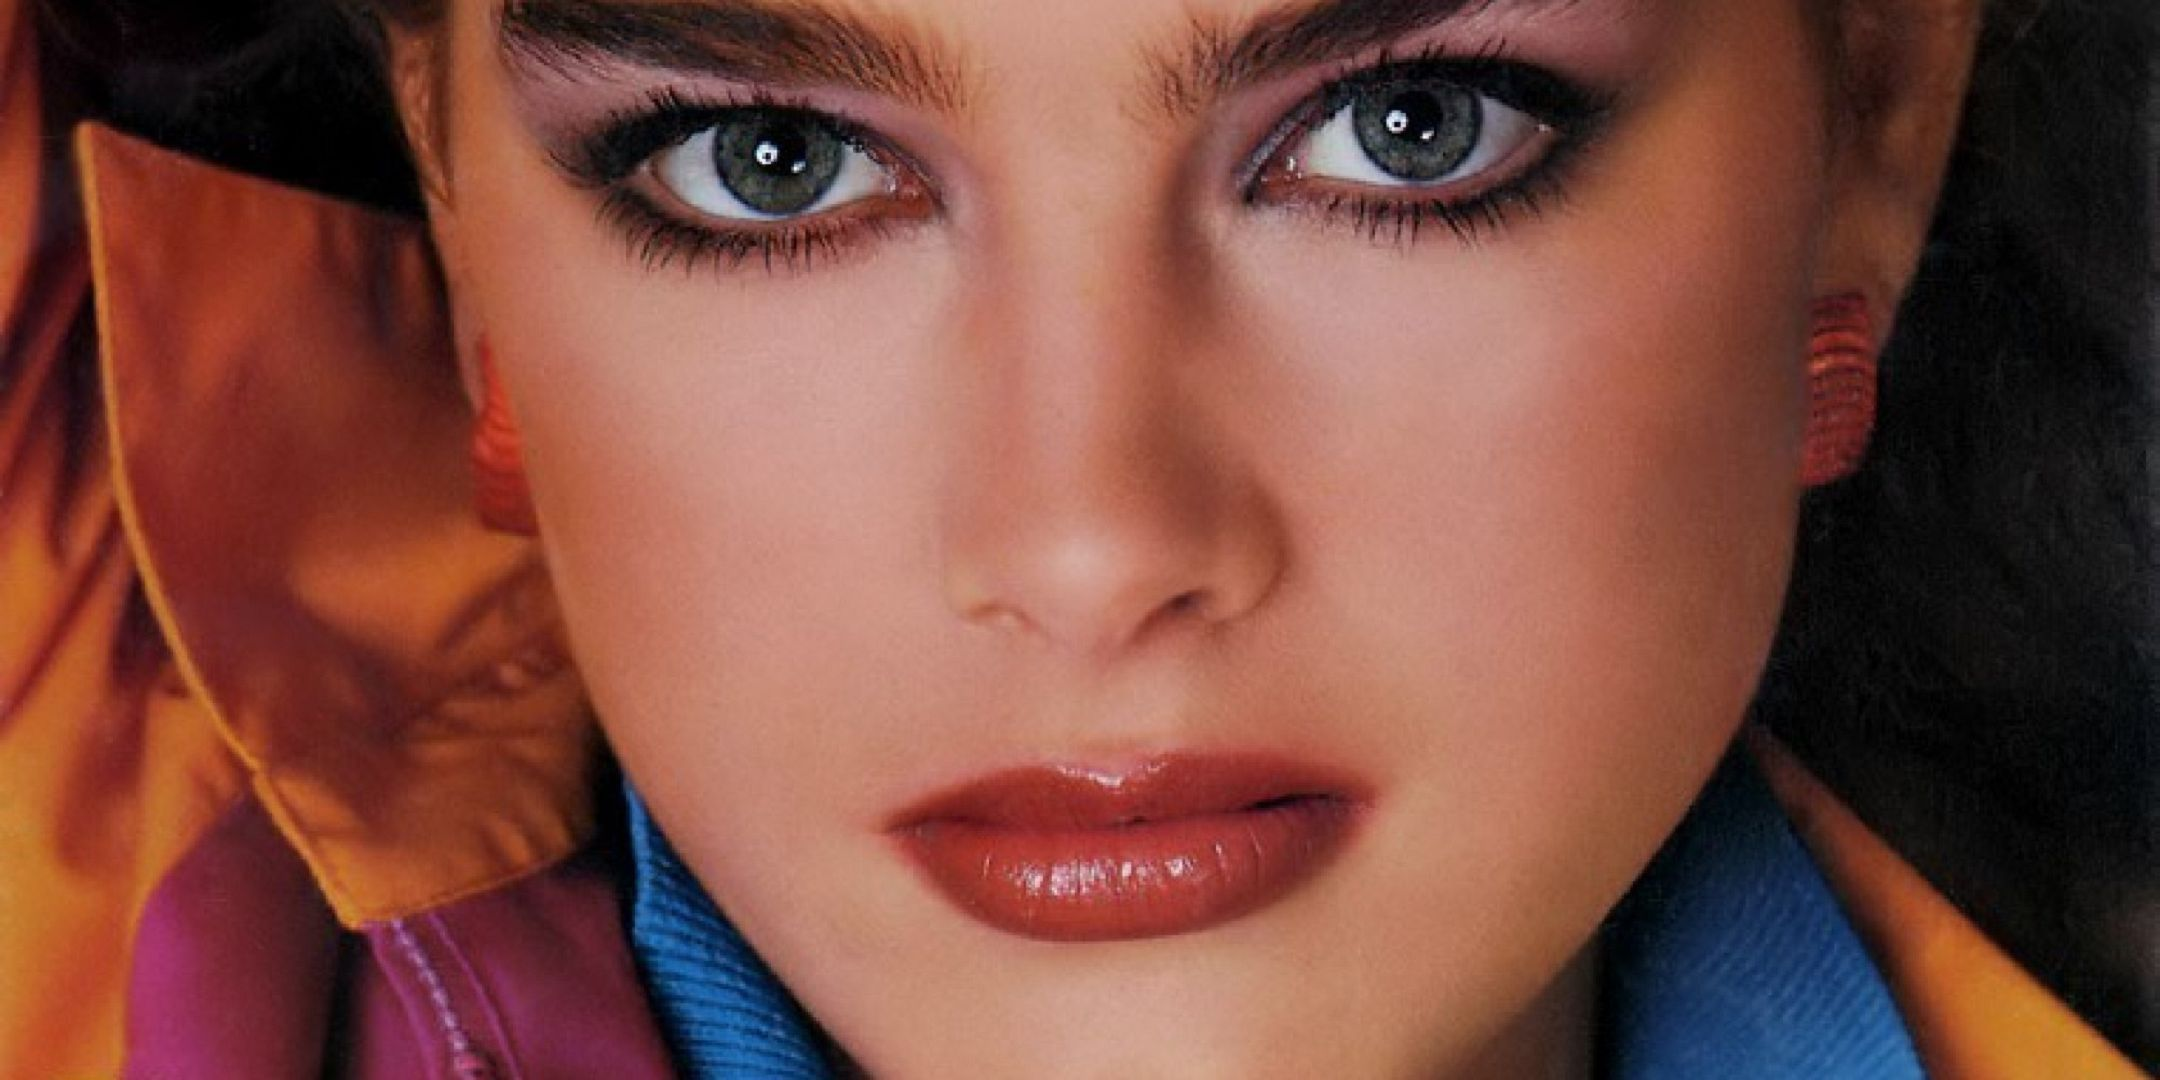 Brooke Shields Tumblr